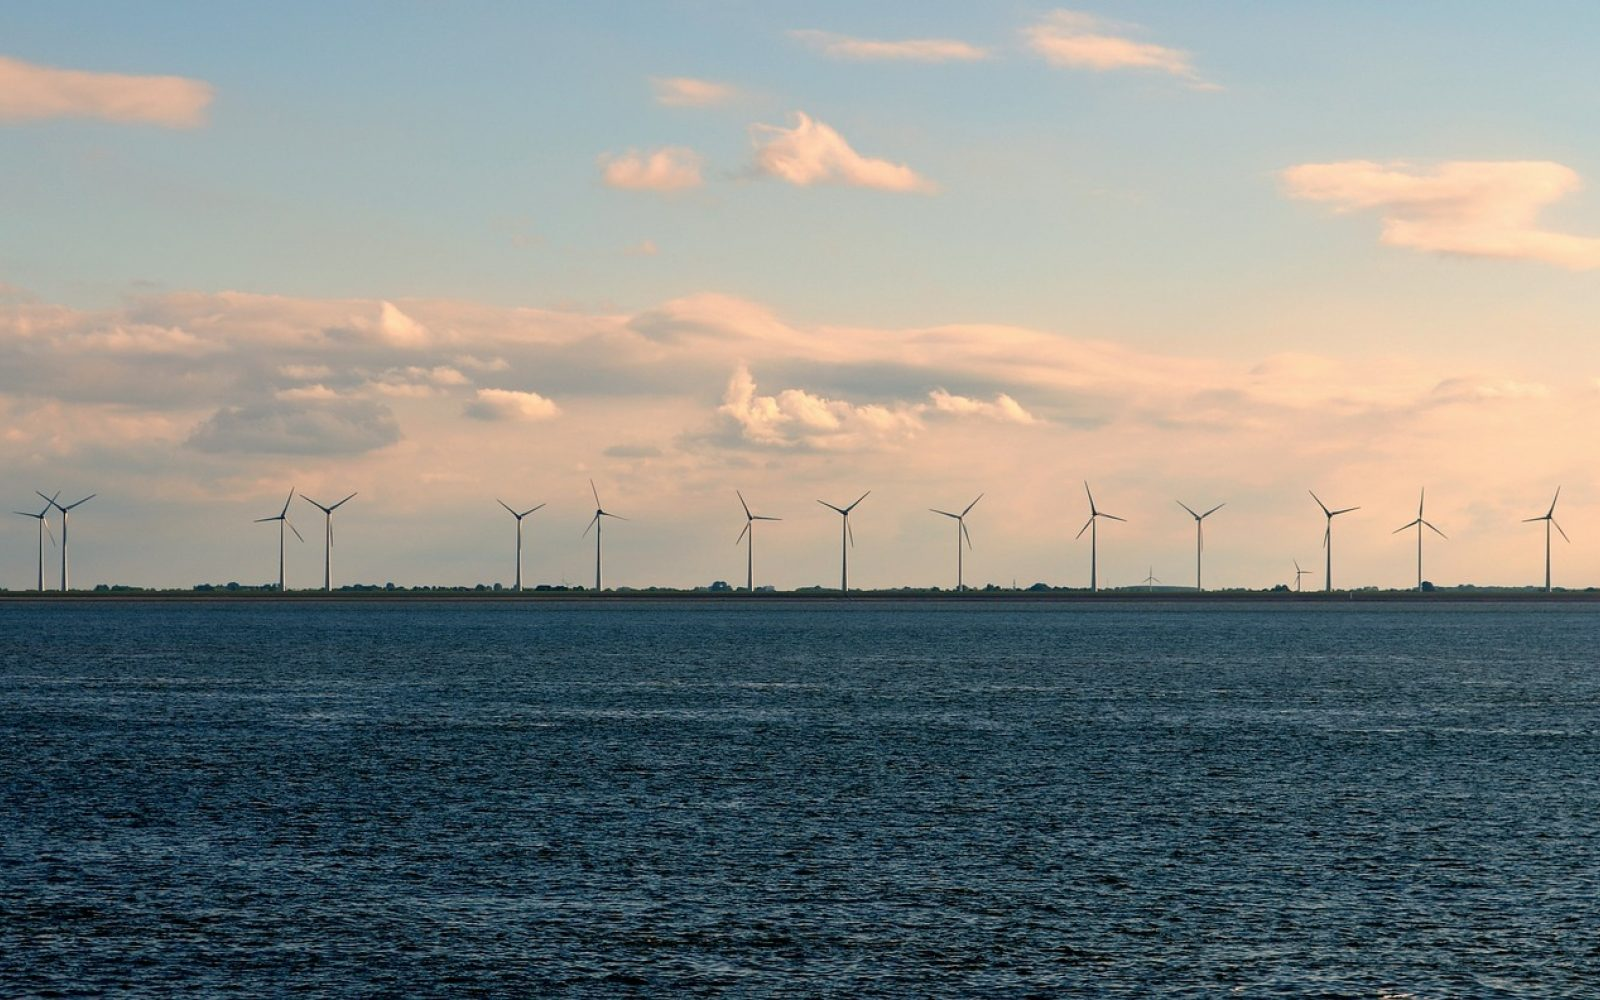 Offshore wind auctions promising subsidy-free power have buoyed the UK's attractiveness.